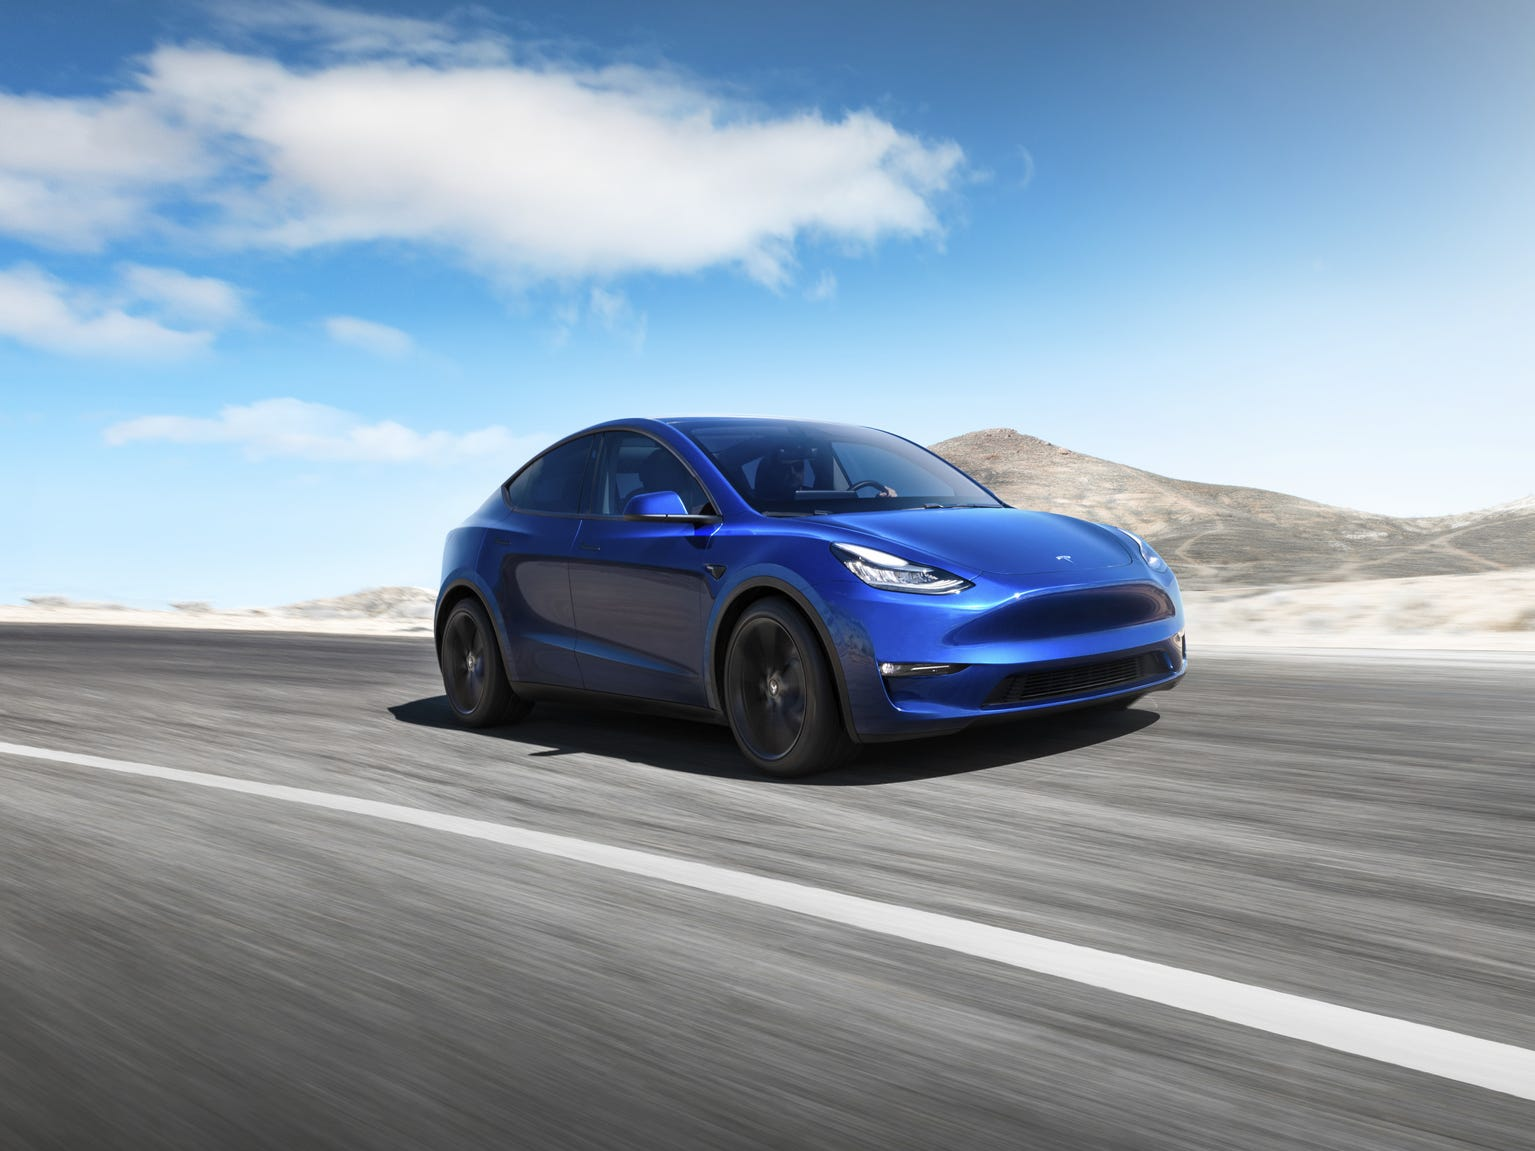 The Tesla Model Y SUV.